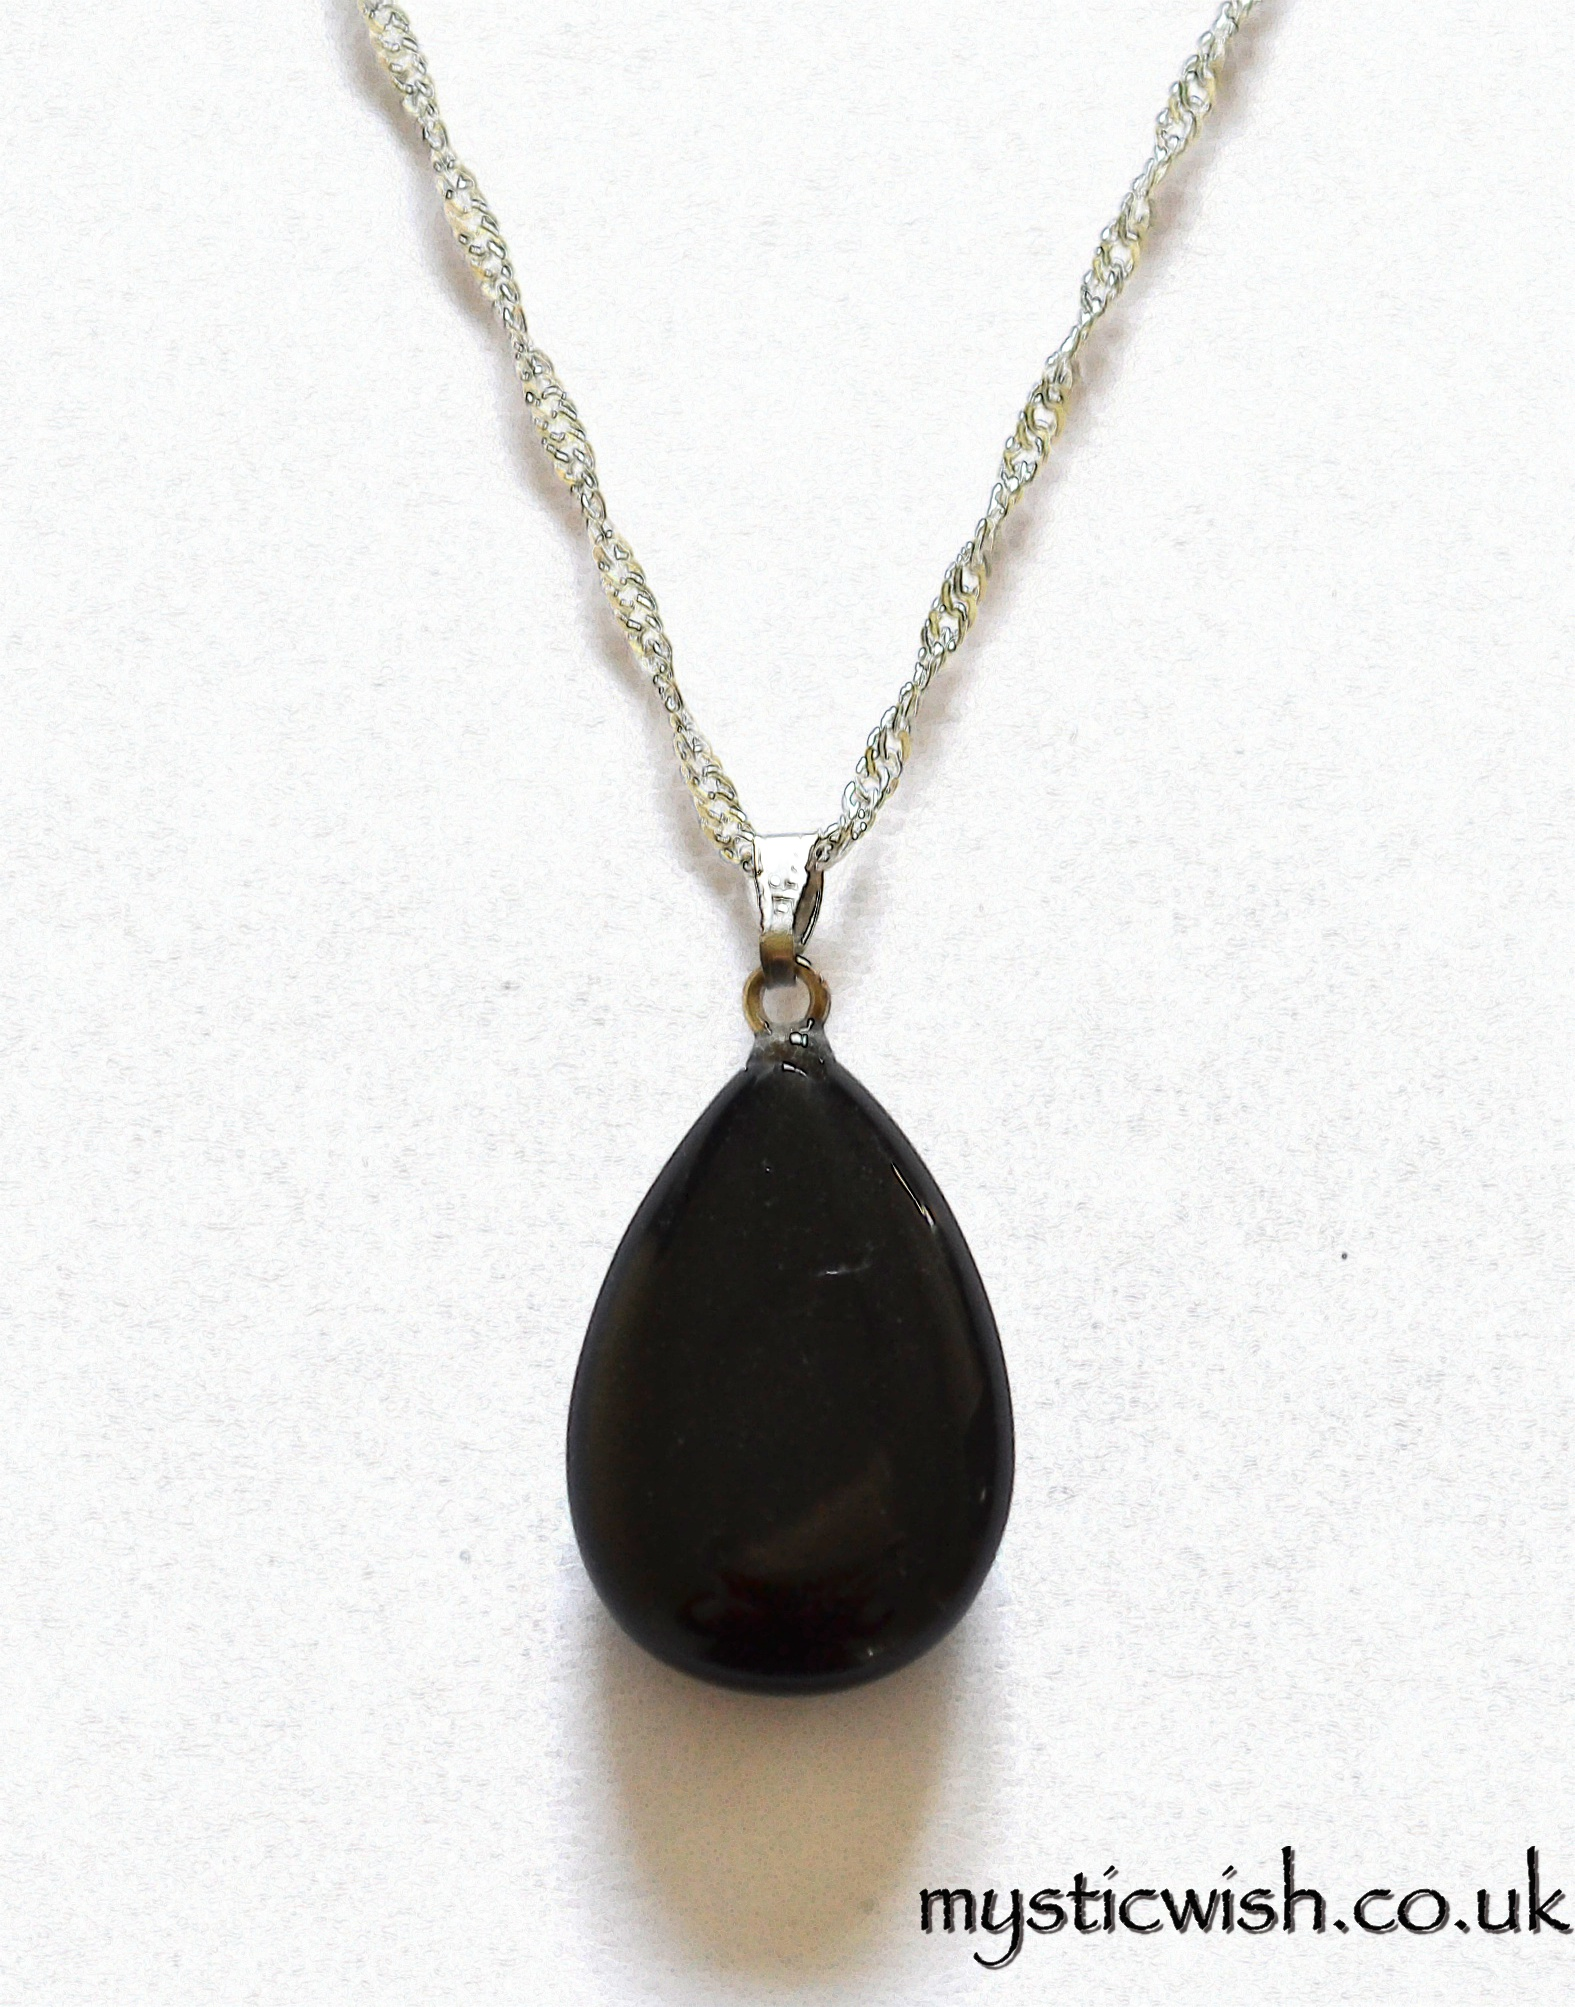 black obsidian teardrop pendant necklace negativity